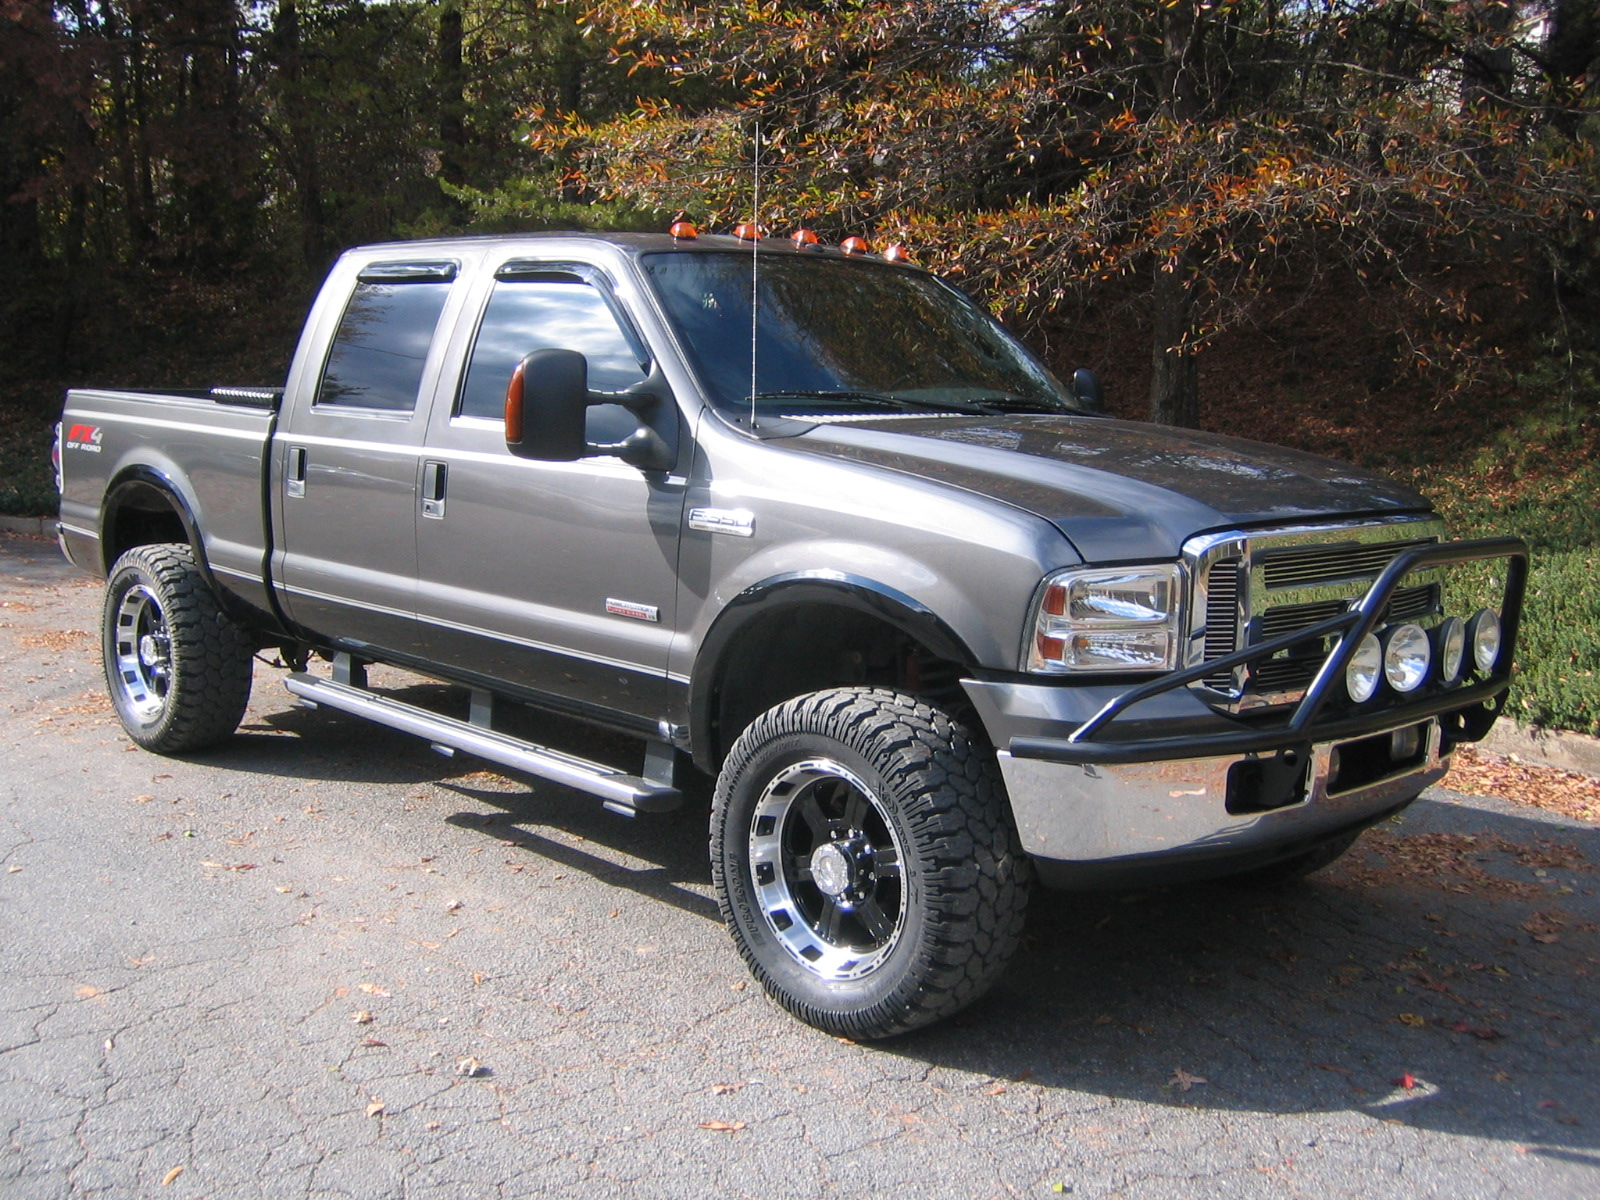 2000 Ford F-350 Super Duty #11